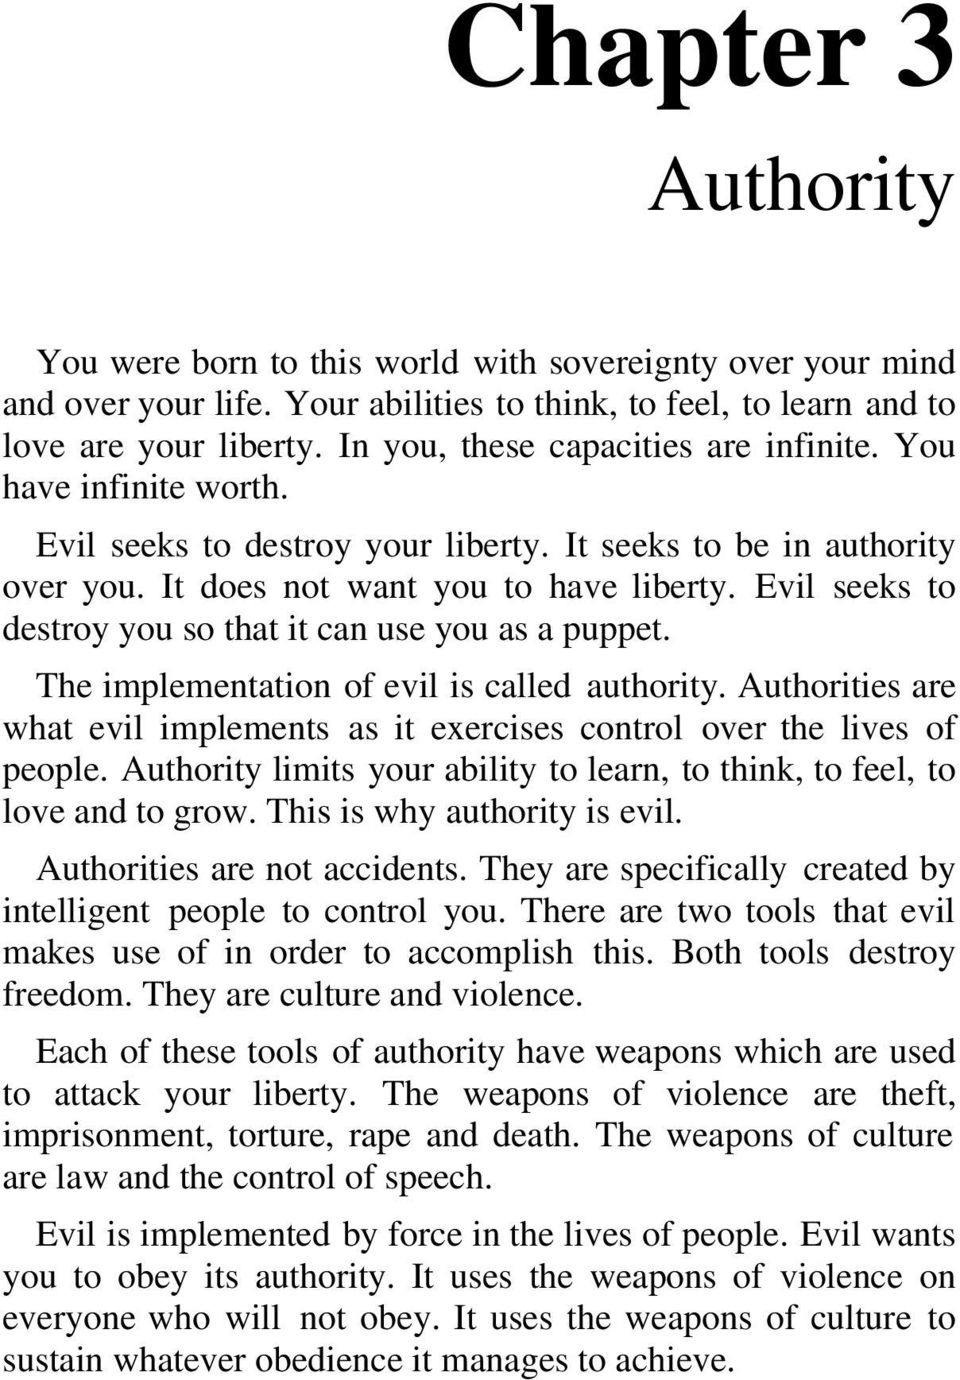 Evil seeks to destroy you so that it can use you as a puppet. The implementation of evil is called authority. Authorities are what evil implements as it exercises control over the lives of people.